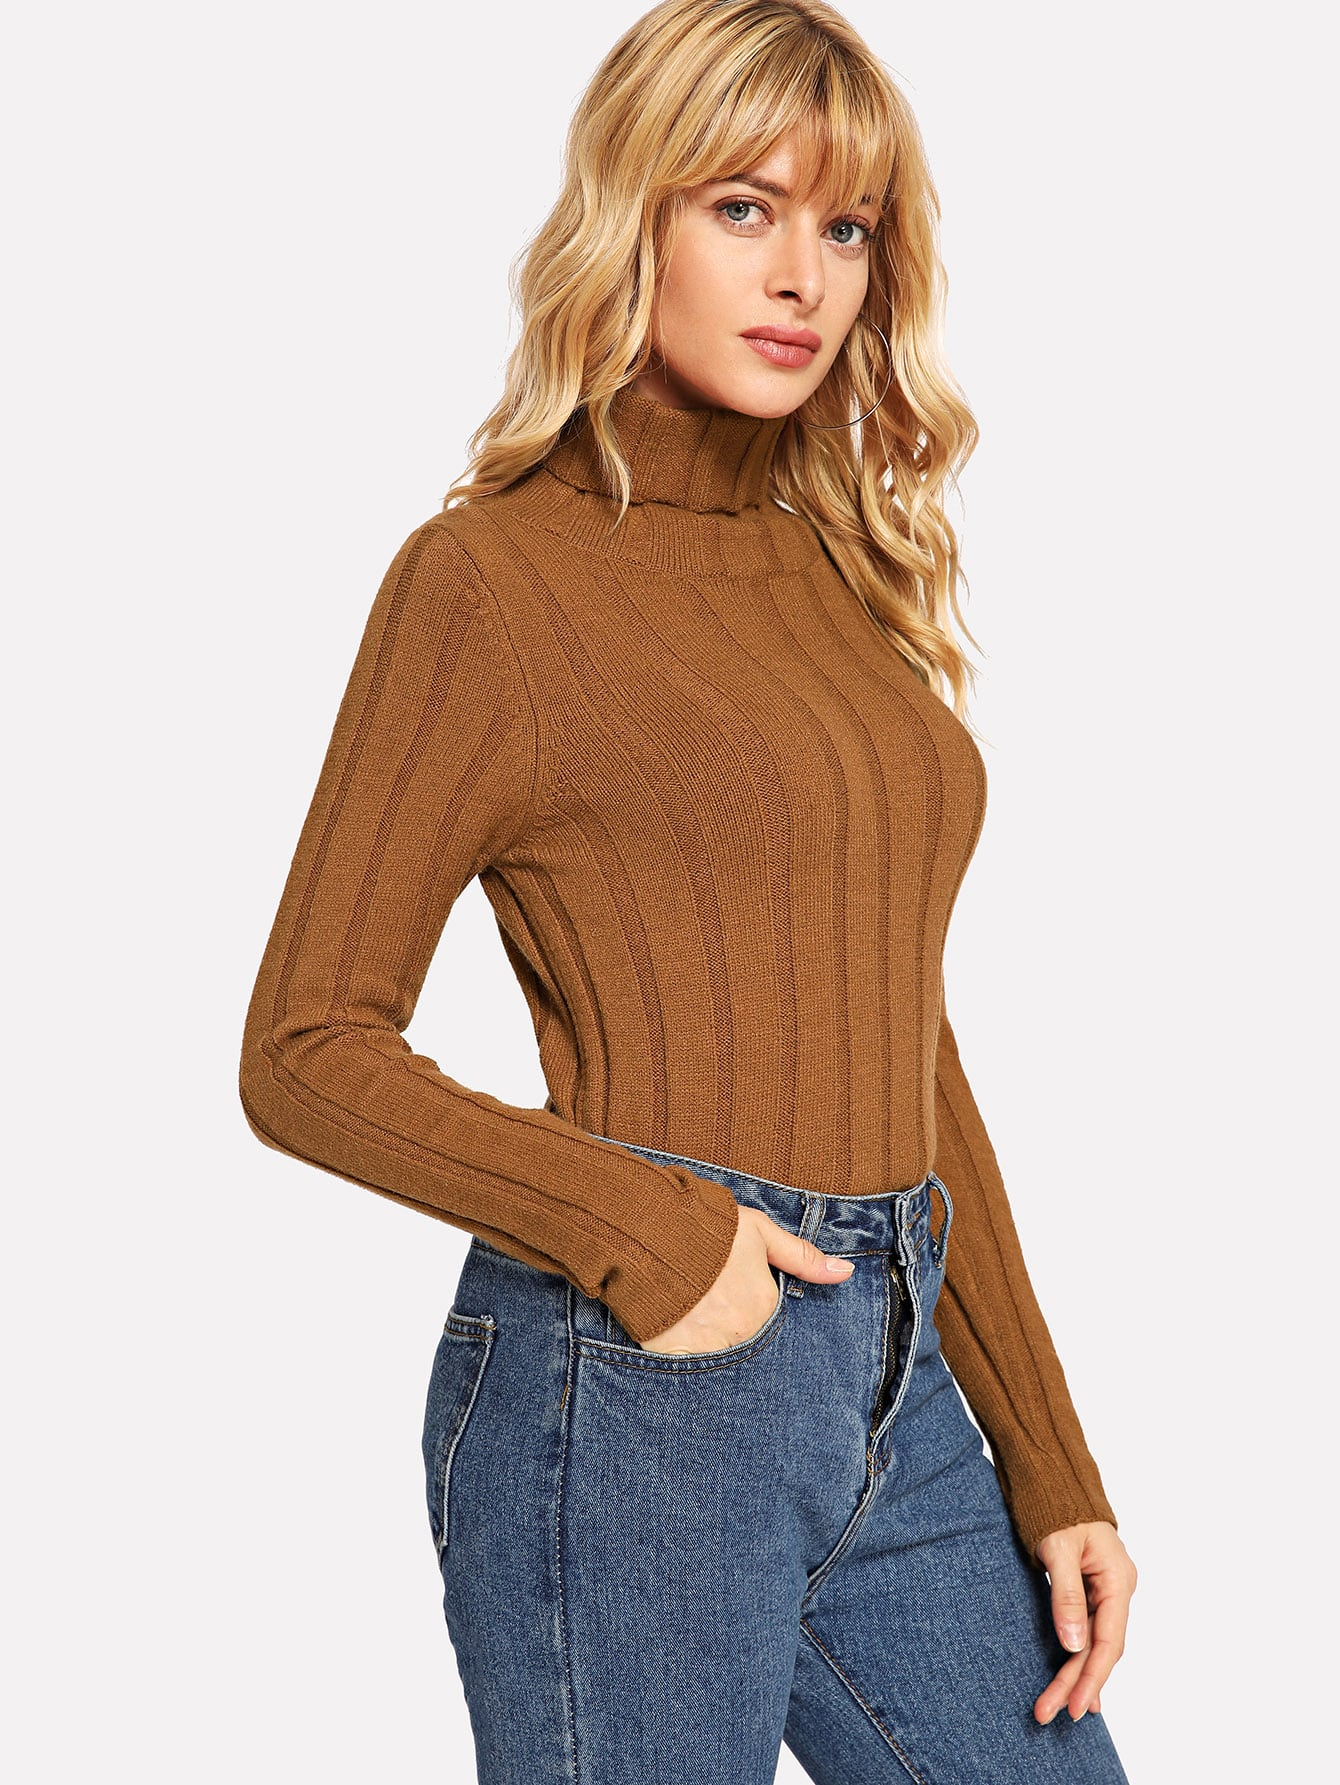 Turtle Neck Form Fitting Rib Sweater Turtle Neck Form Fitting Rib Sweater